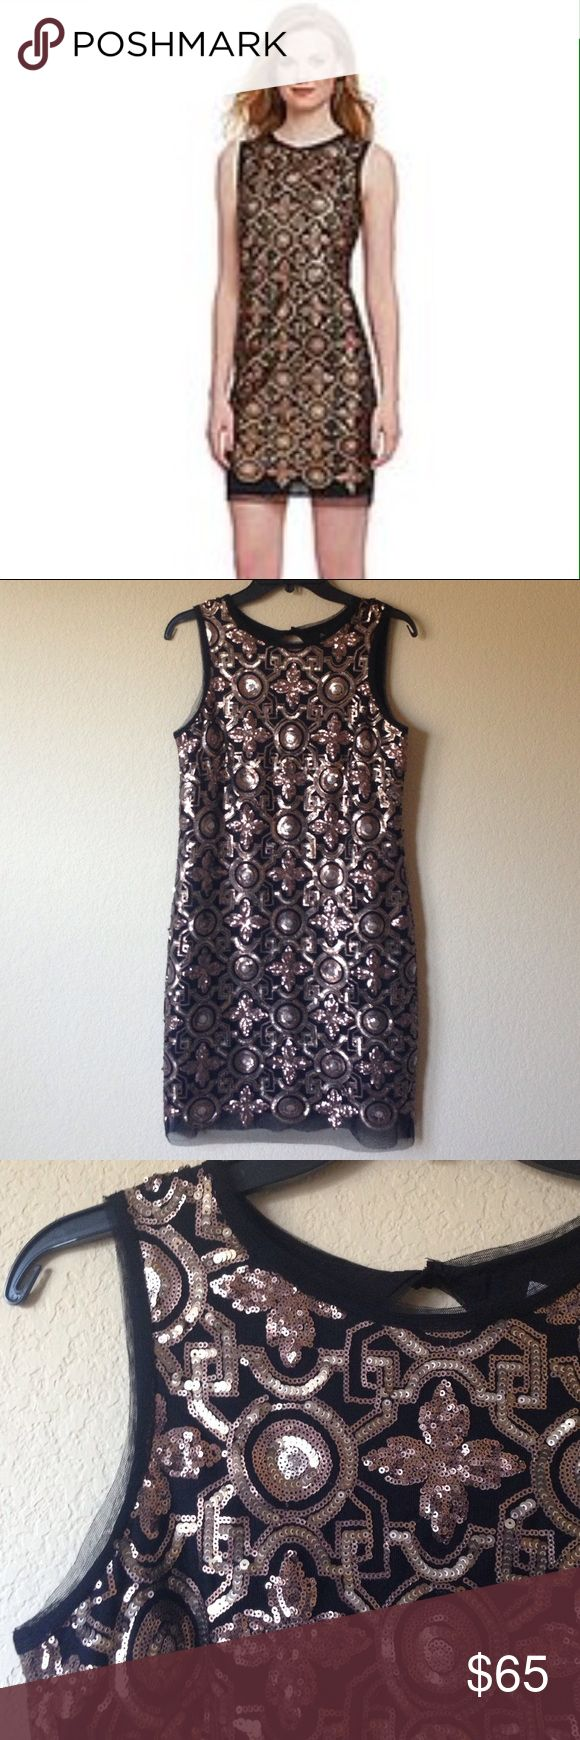 NWT Sequin Party Dress This dress is gorgeous, perfect for New Years Eve, a cruise or holiday party. Clasp around the neck with key hole opening in the back , fully lined Chelsea & Violet Dresses Mini